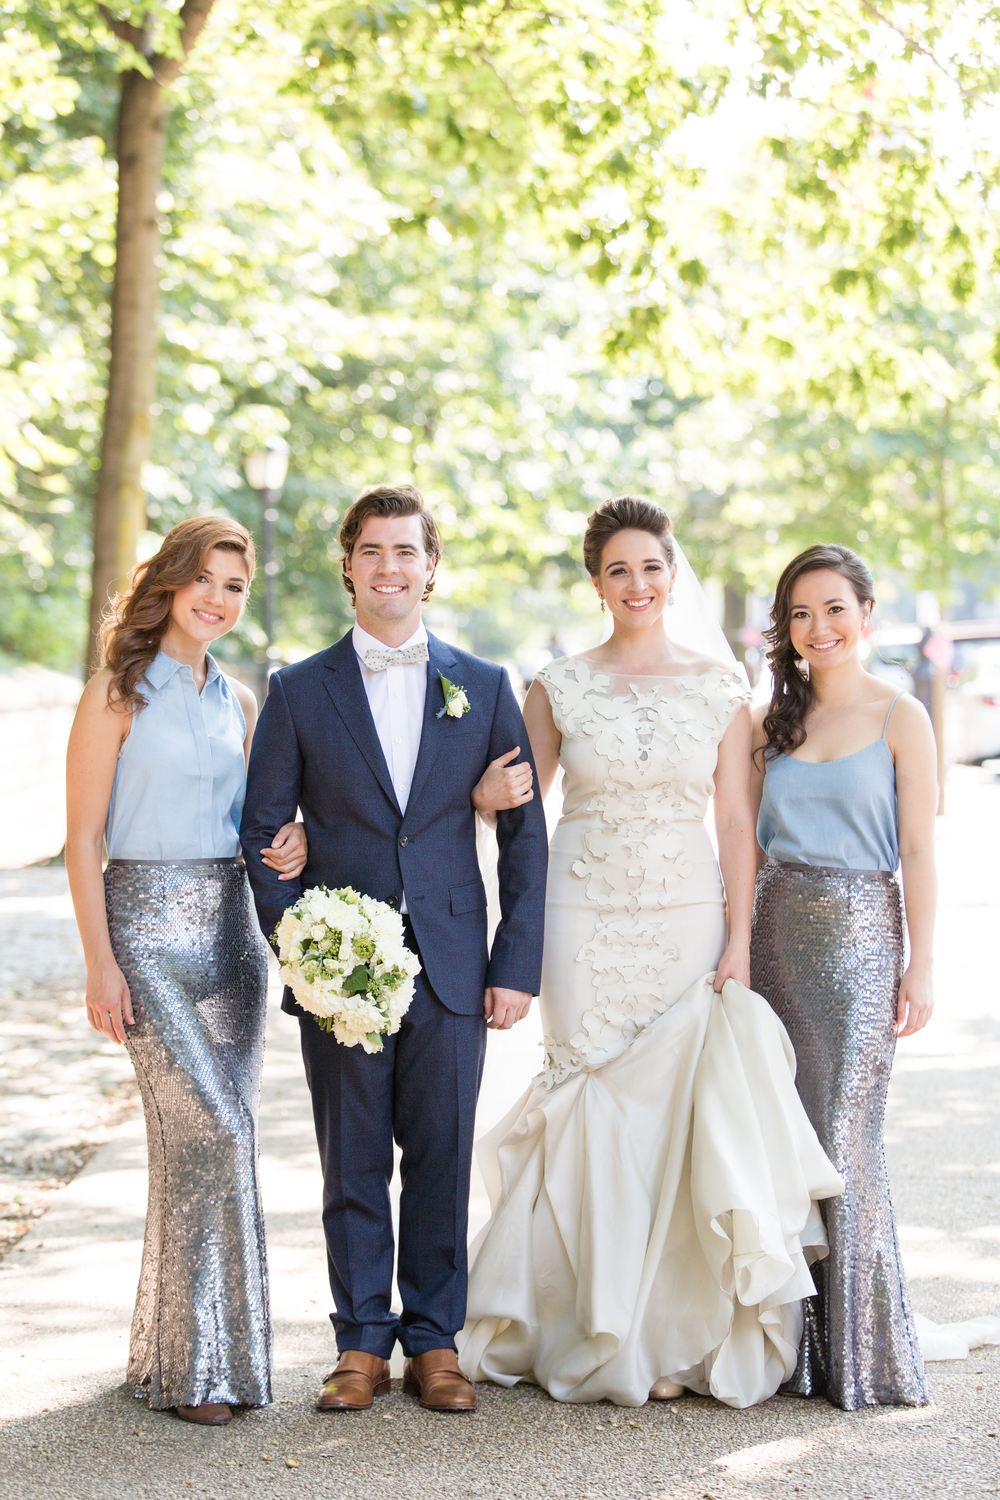 hannah_shih_hanaluluco_cj_isaac_charlie_juliet_ombre_chambray_prospect_park_brooklyn_wedding_17.jpg